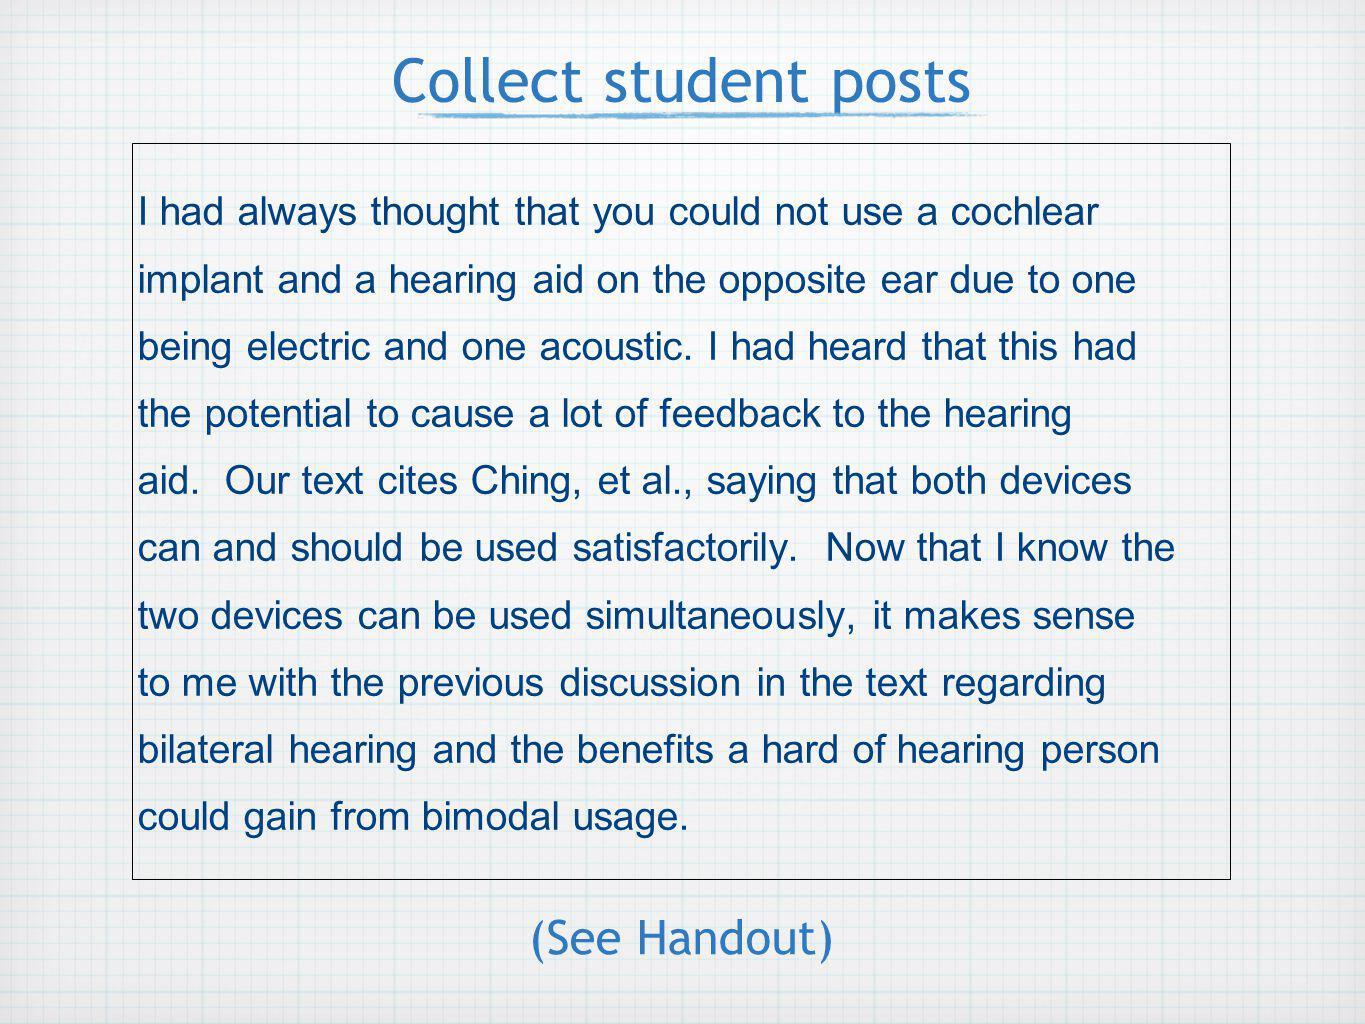 I had always thought that you could not use a cochlear implant and a hearing aid on the opposite ear due to one being electric and one acoustic.